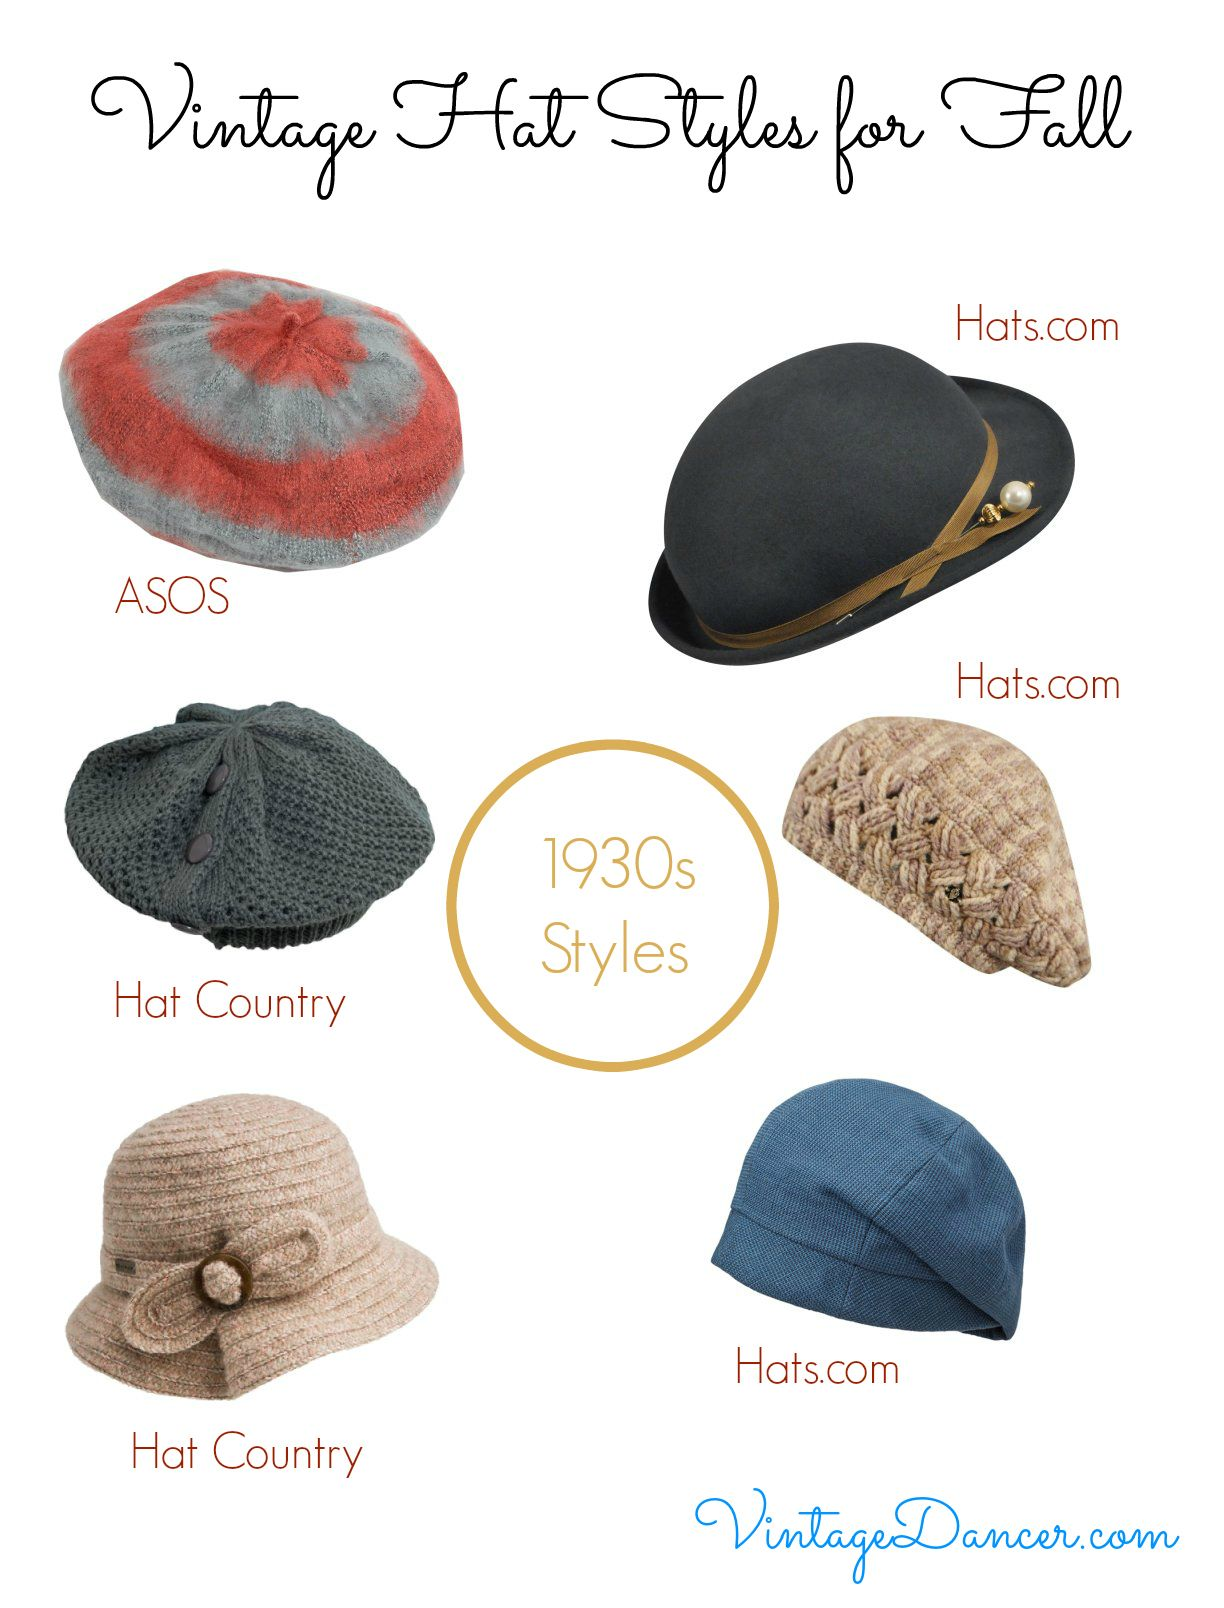 Vintage Hat Styles For Fall Winter Hats Vintage Hat Fashion Retro Hats